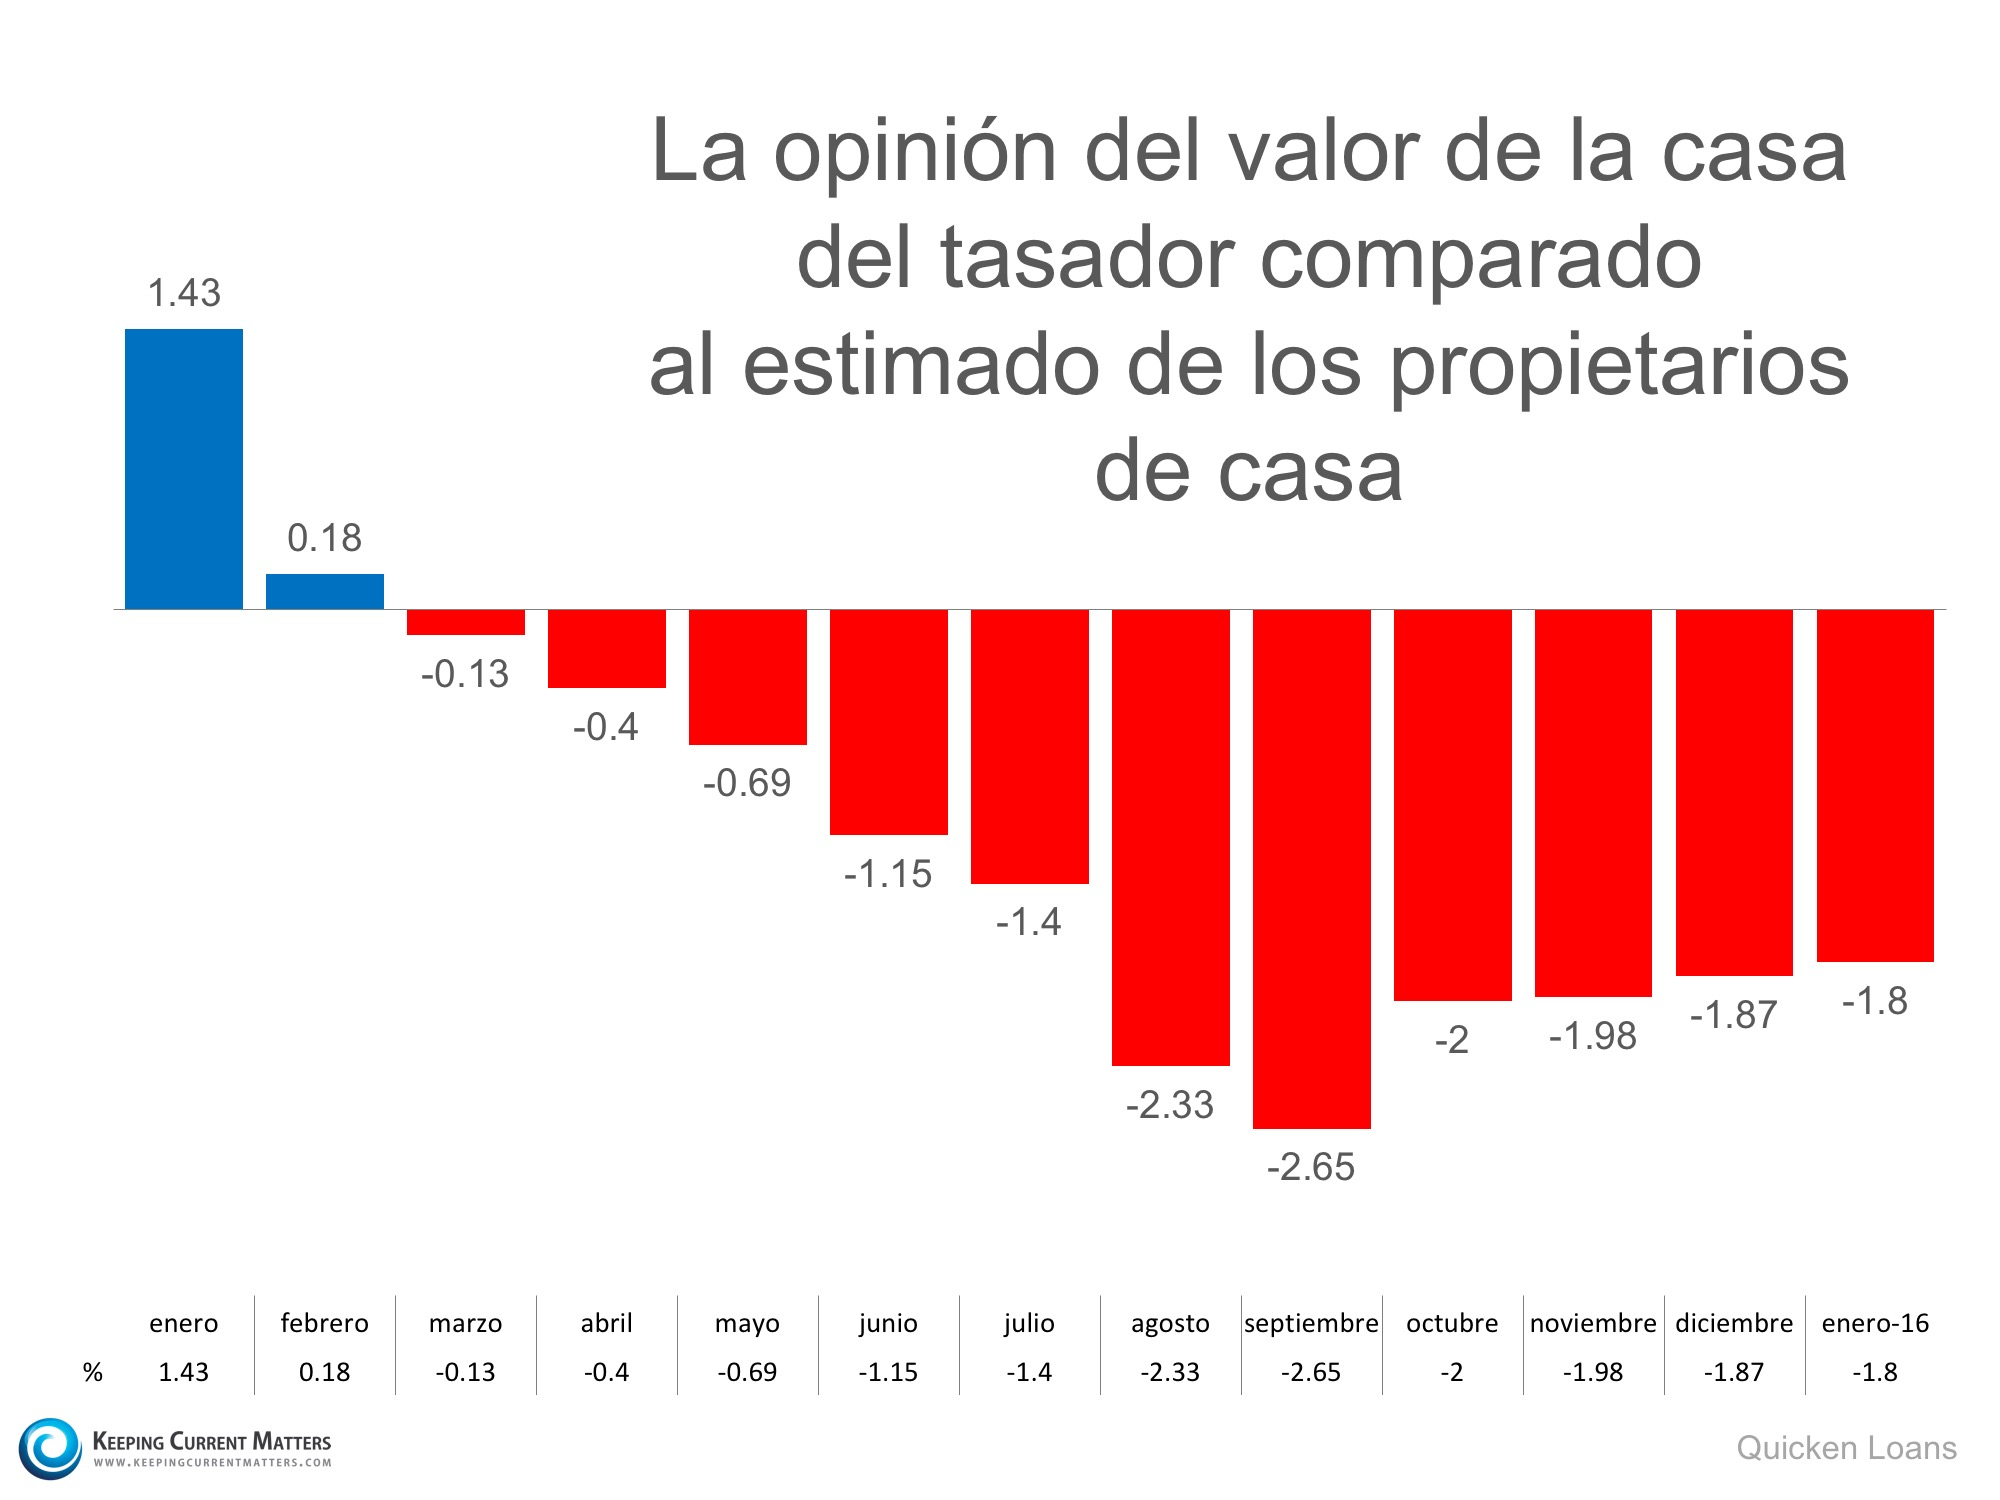 La opinion del valor de la casa| Keeping Current Matters